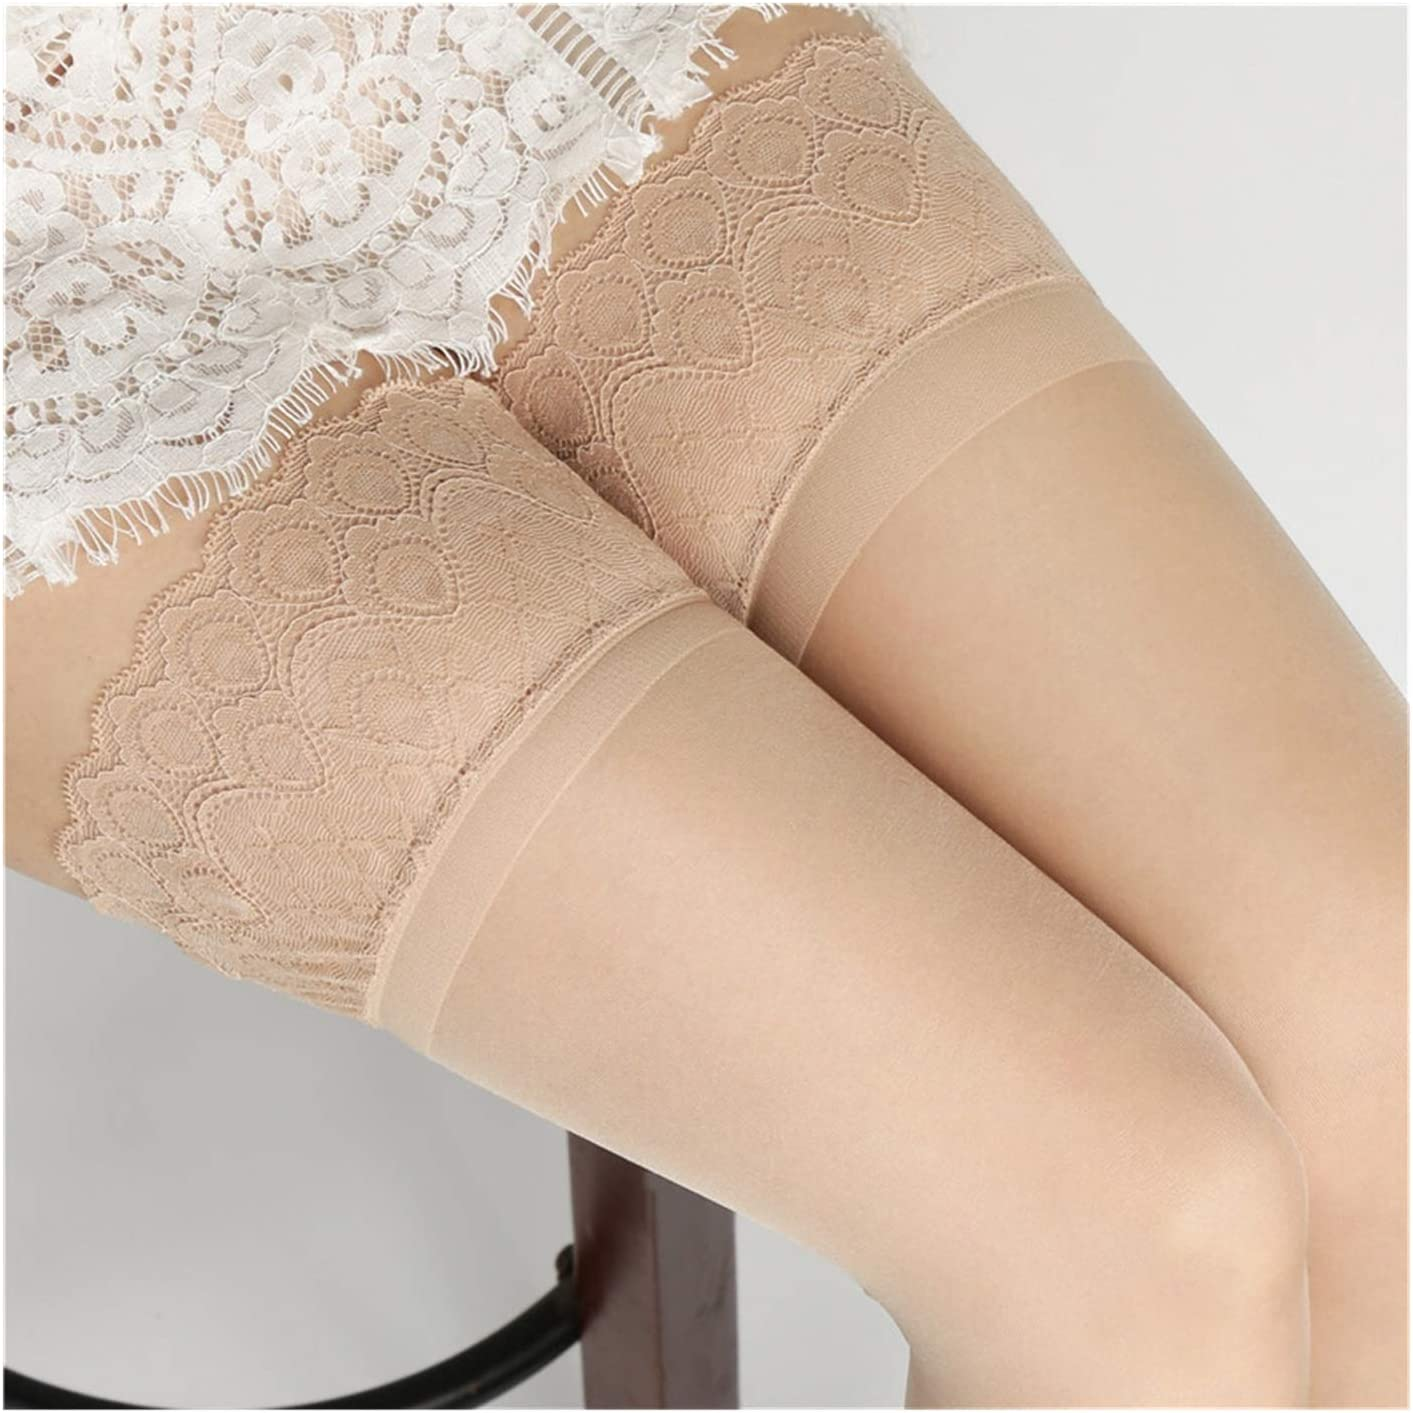 Linyuex Non-Slip Silicone Women Sexy Lace High Stockings Oil Glossy Transparent Pantyhose Lingerie (Color : Style 1 Skin)